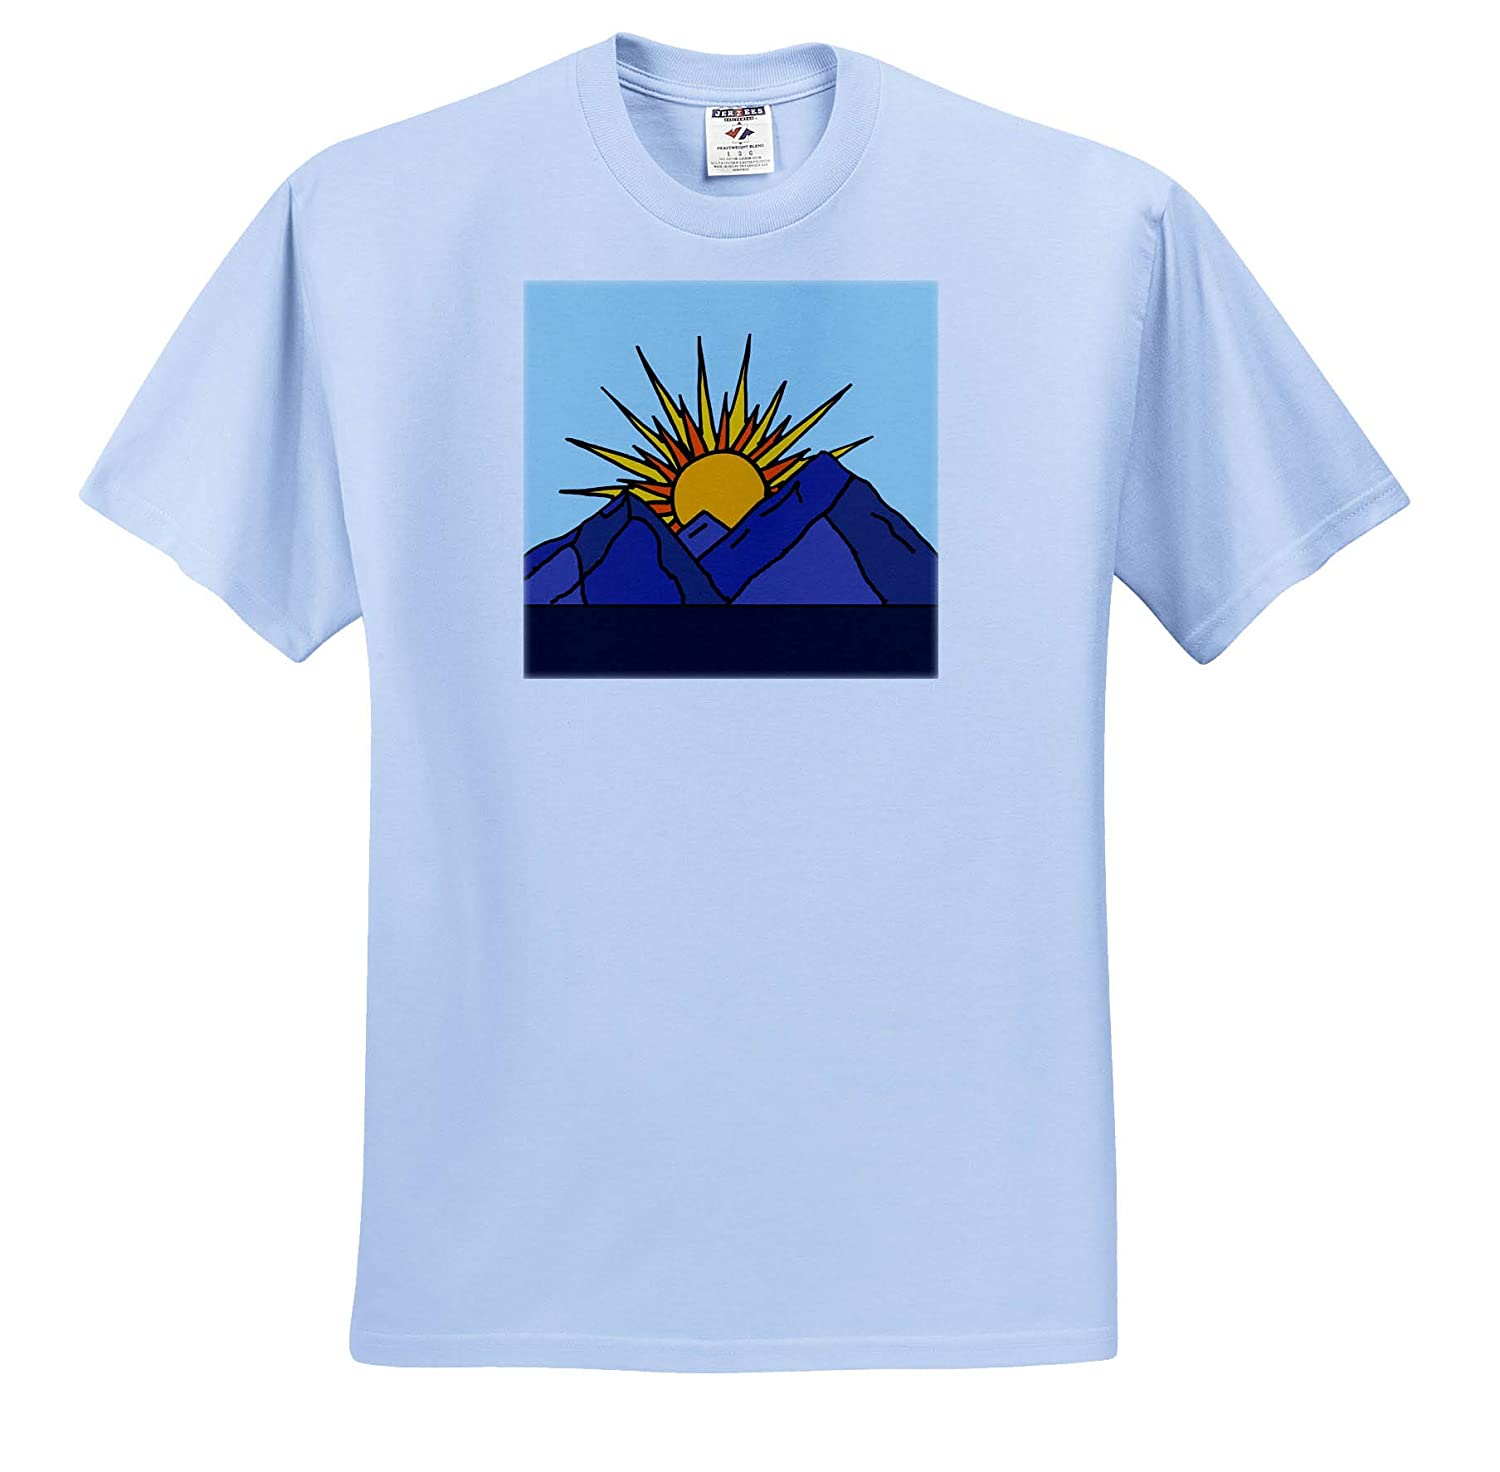 Cool Artistic Sun Rise and Mountains Design 3dRose All Smiles Art ts/_315991 Travel Adult T-Shirt XL